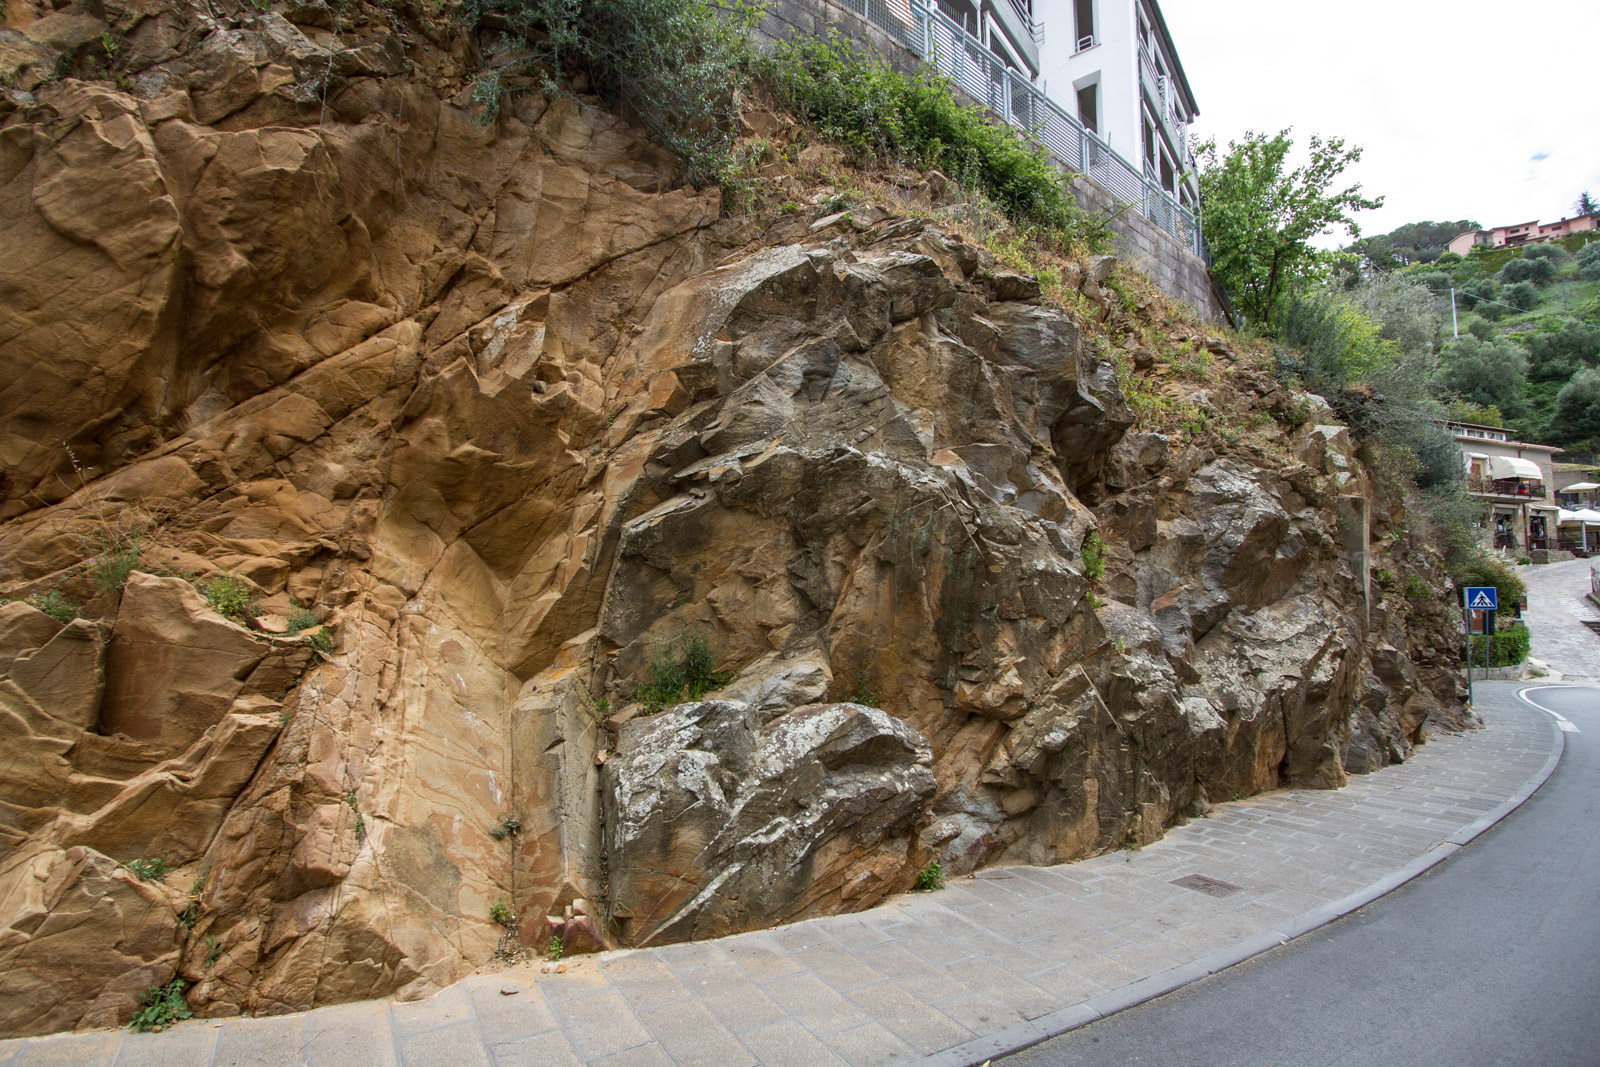 The importnace of the rocks is evident as the road cuts through a mineral outcrop.